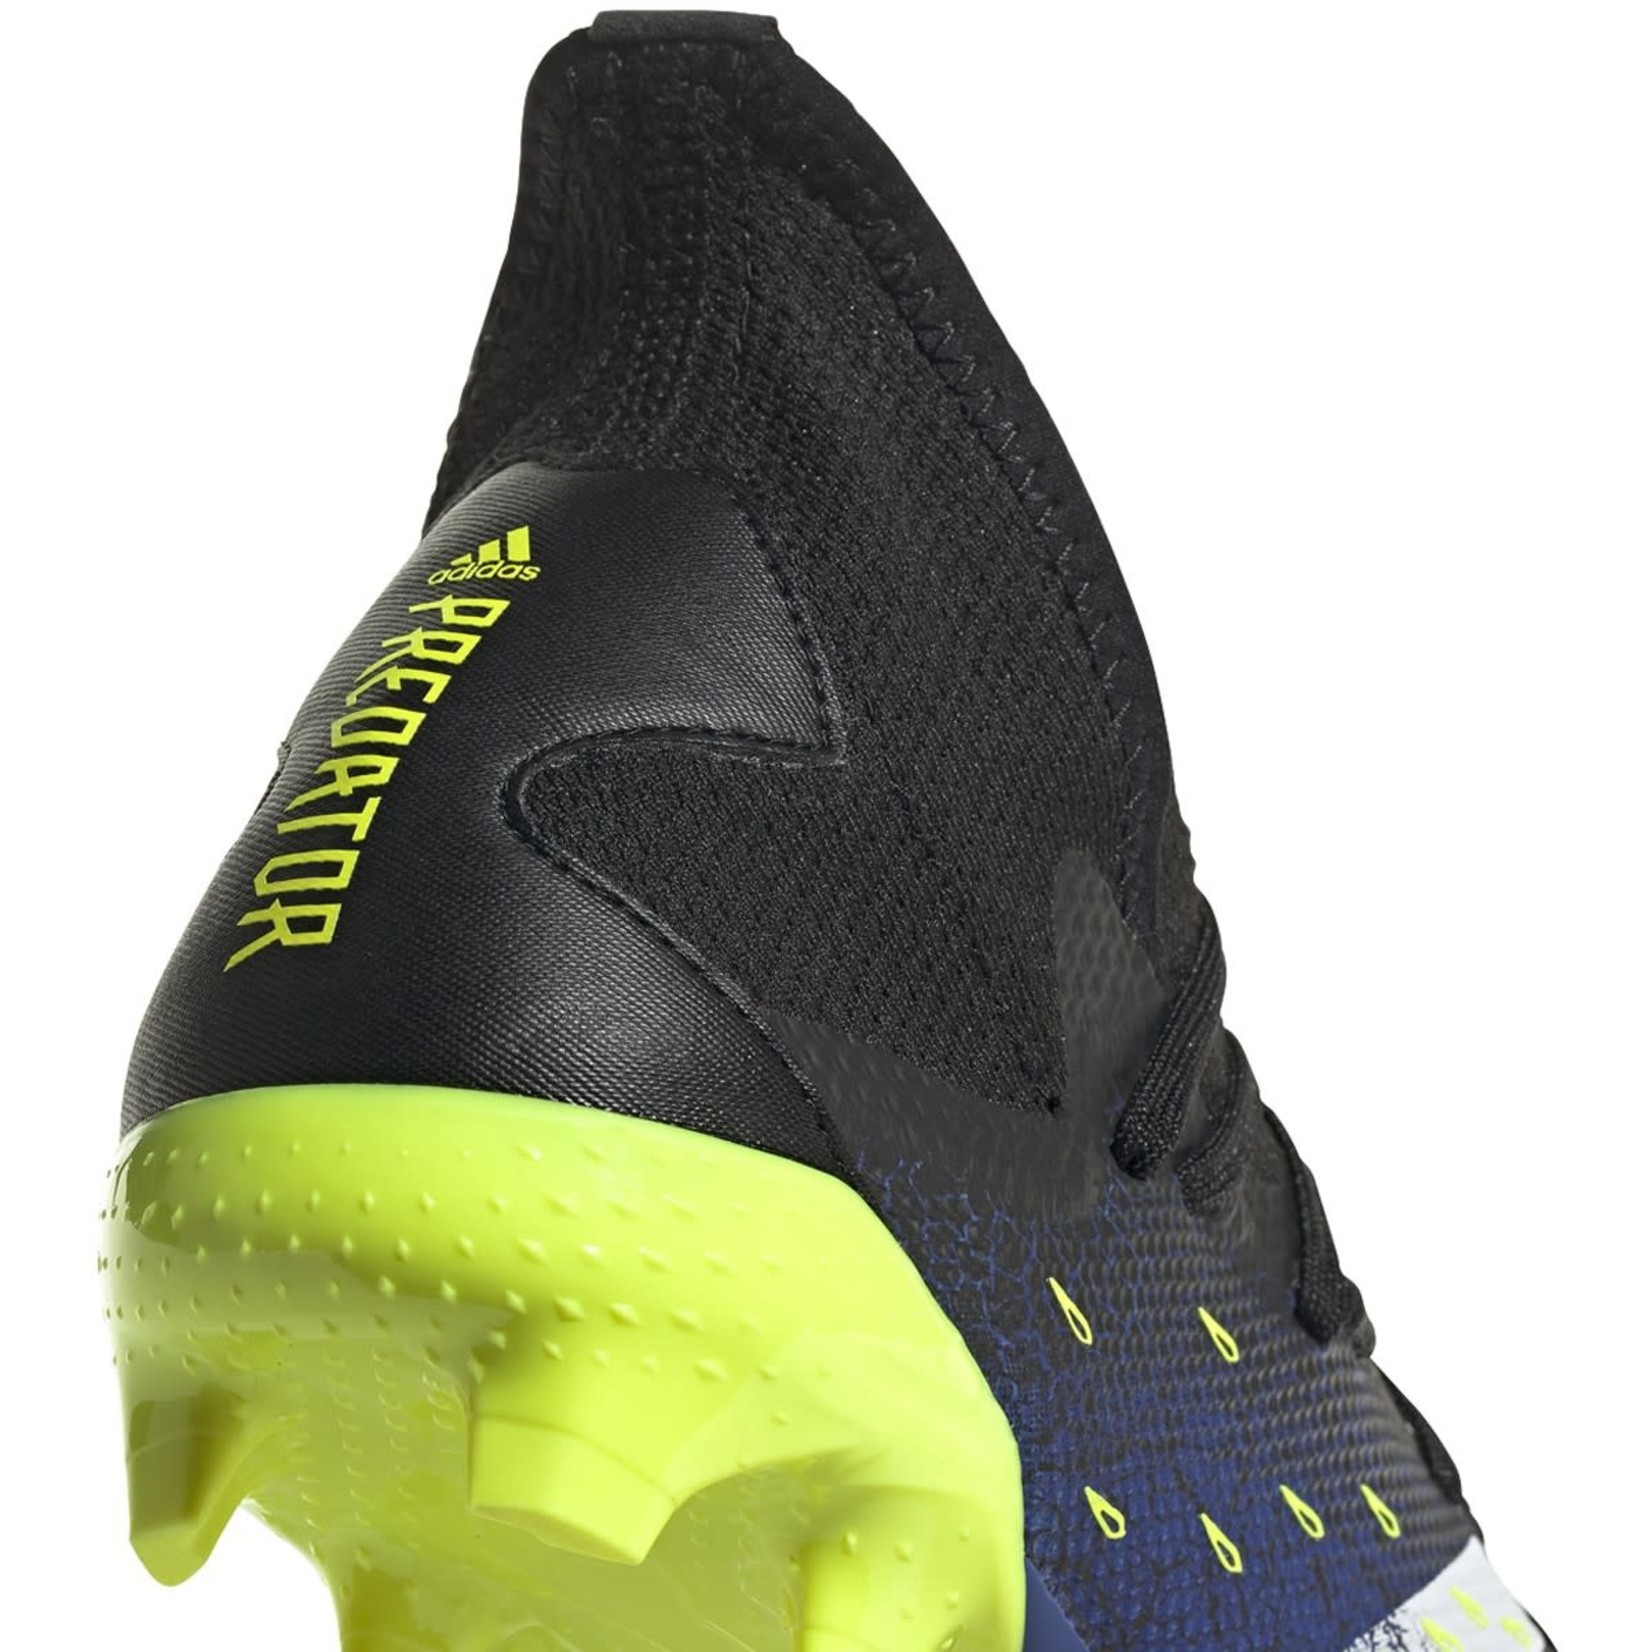 ADIDAS PREDATOR FREAK.3 FG (BLACK/BLUE)